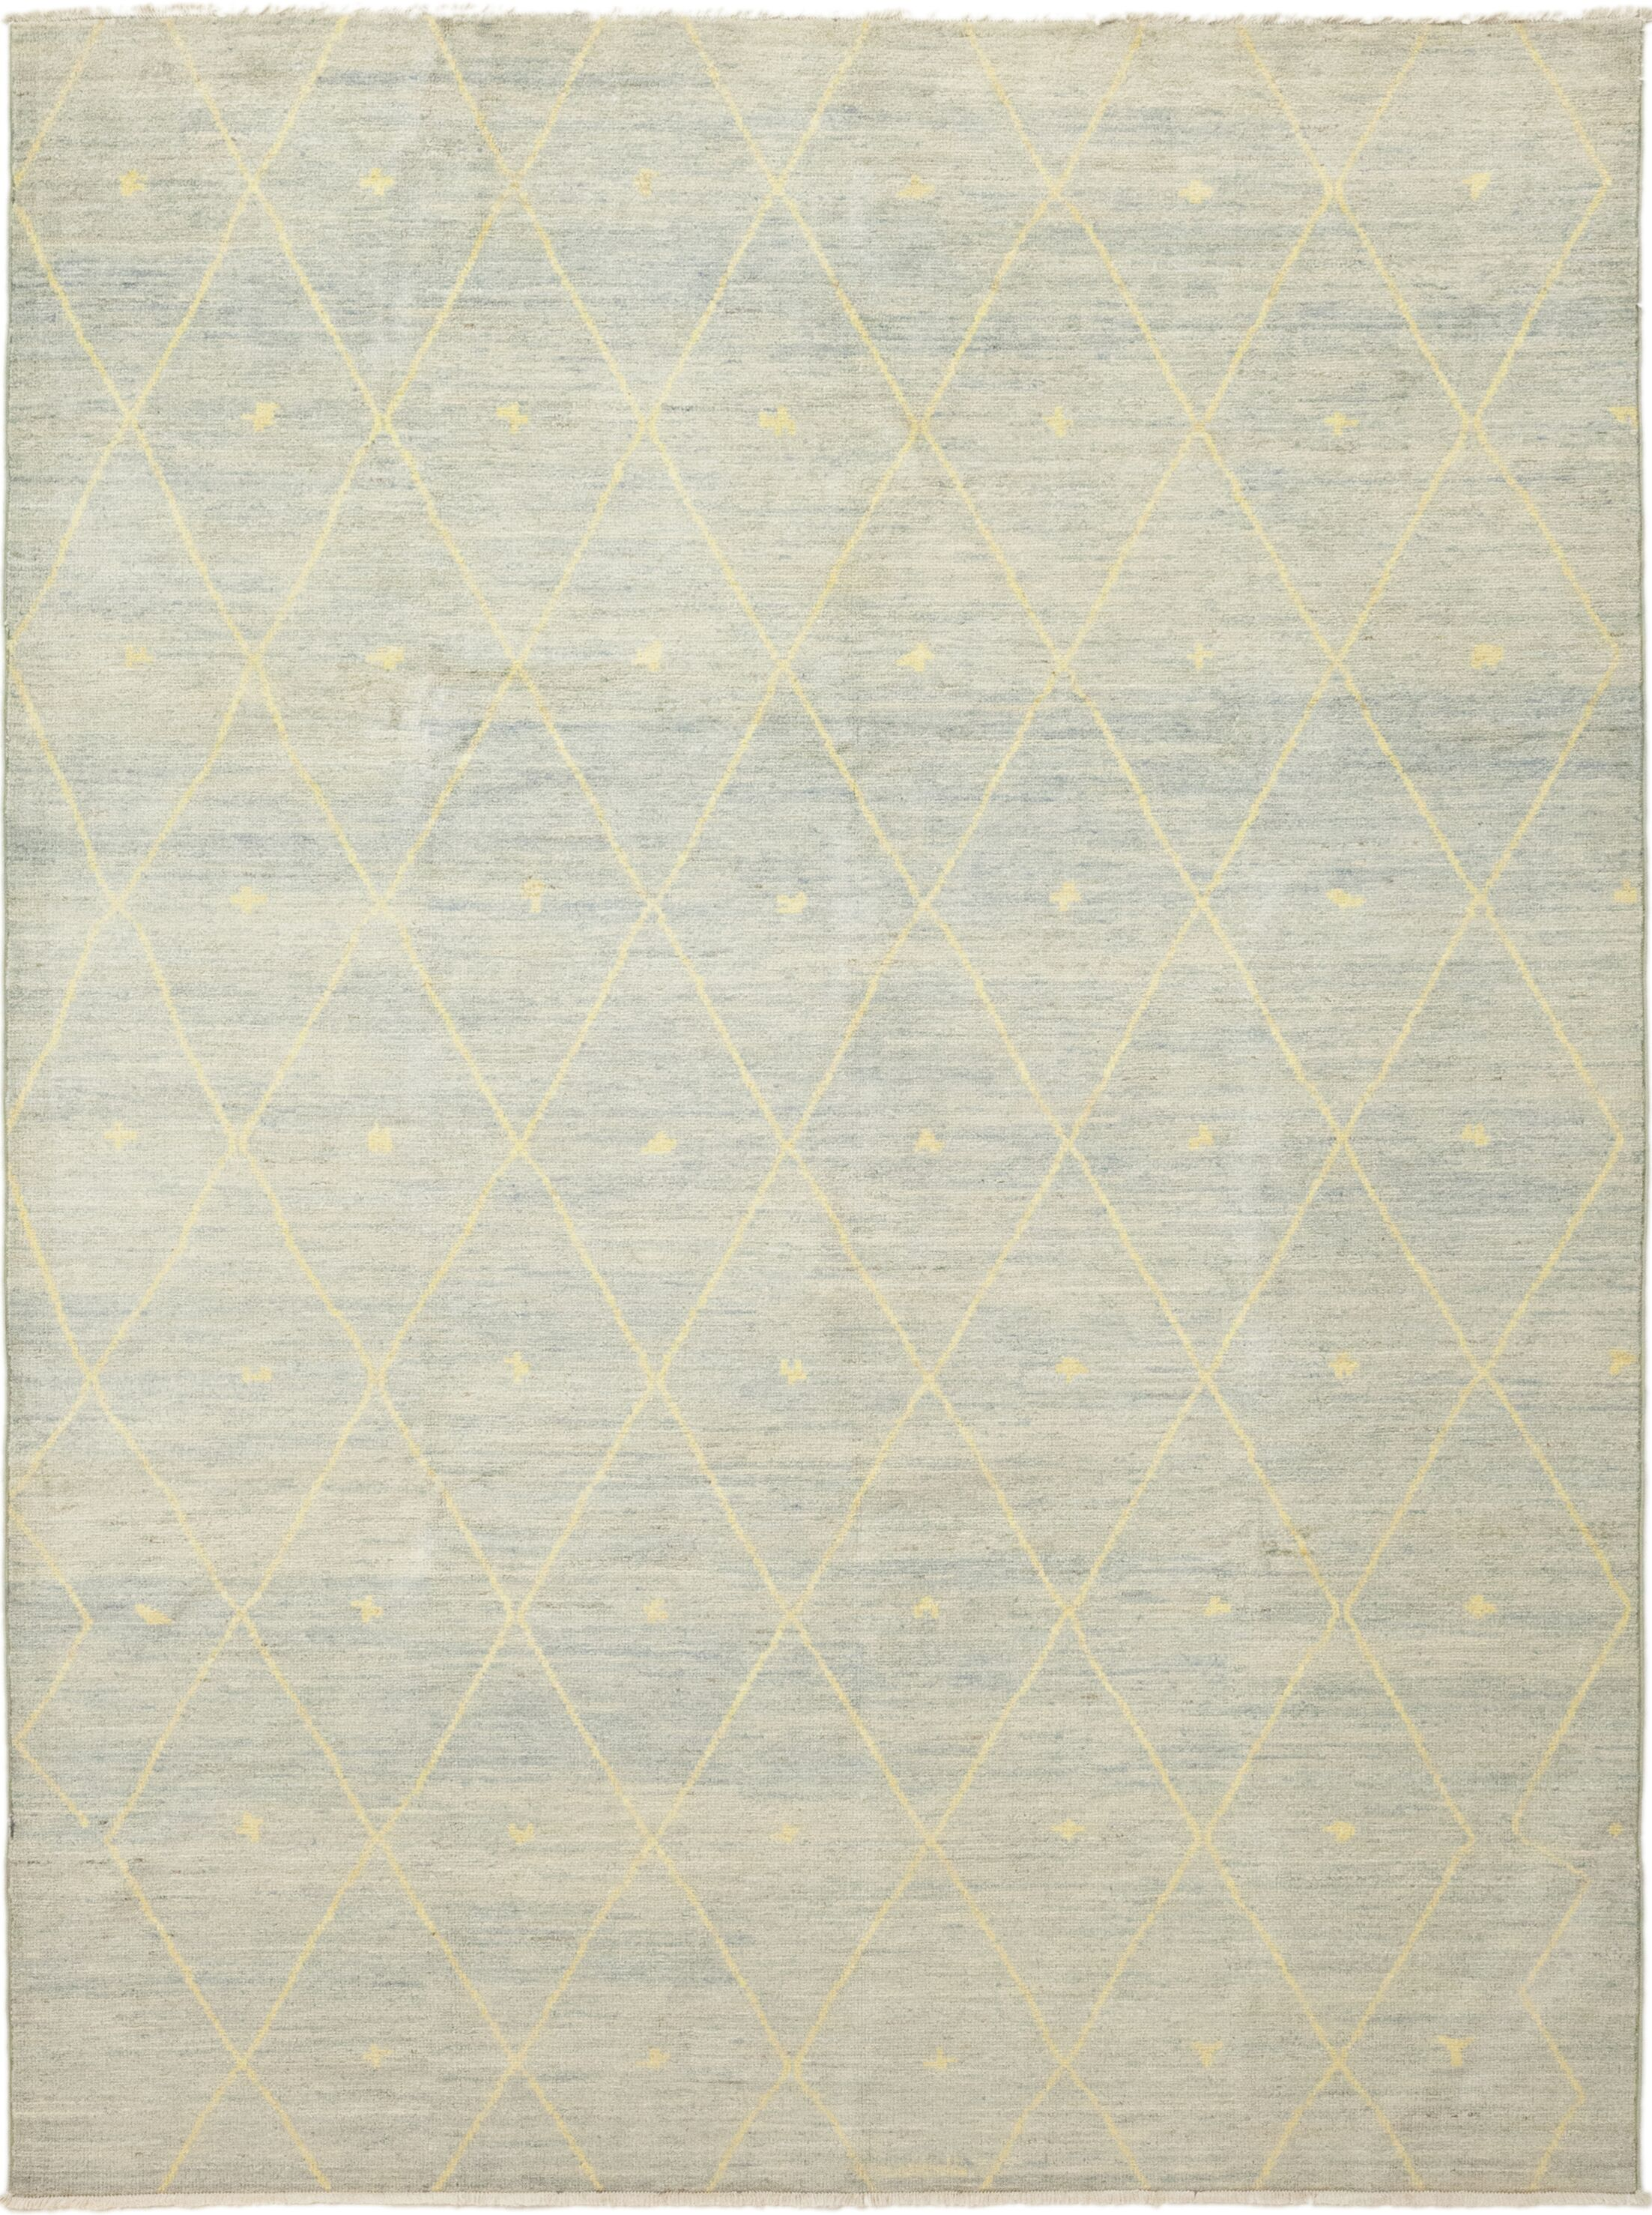 One-of-a-Kind Chelmsford Hand-Knotted Wool Blue/Beige Indoor Area Rug